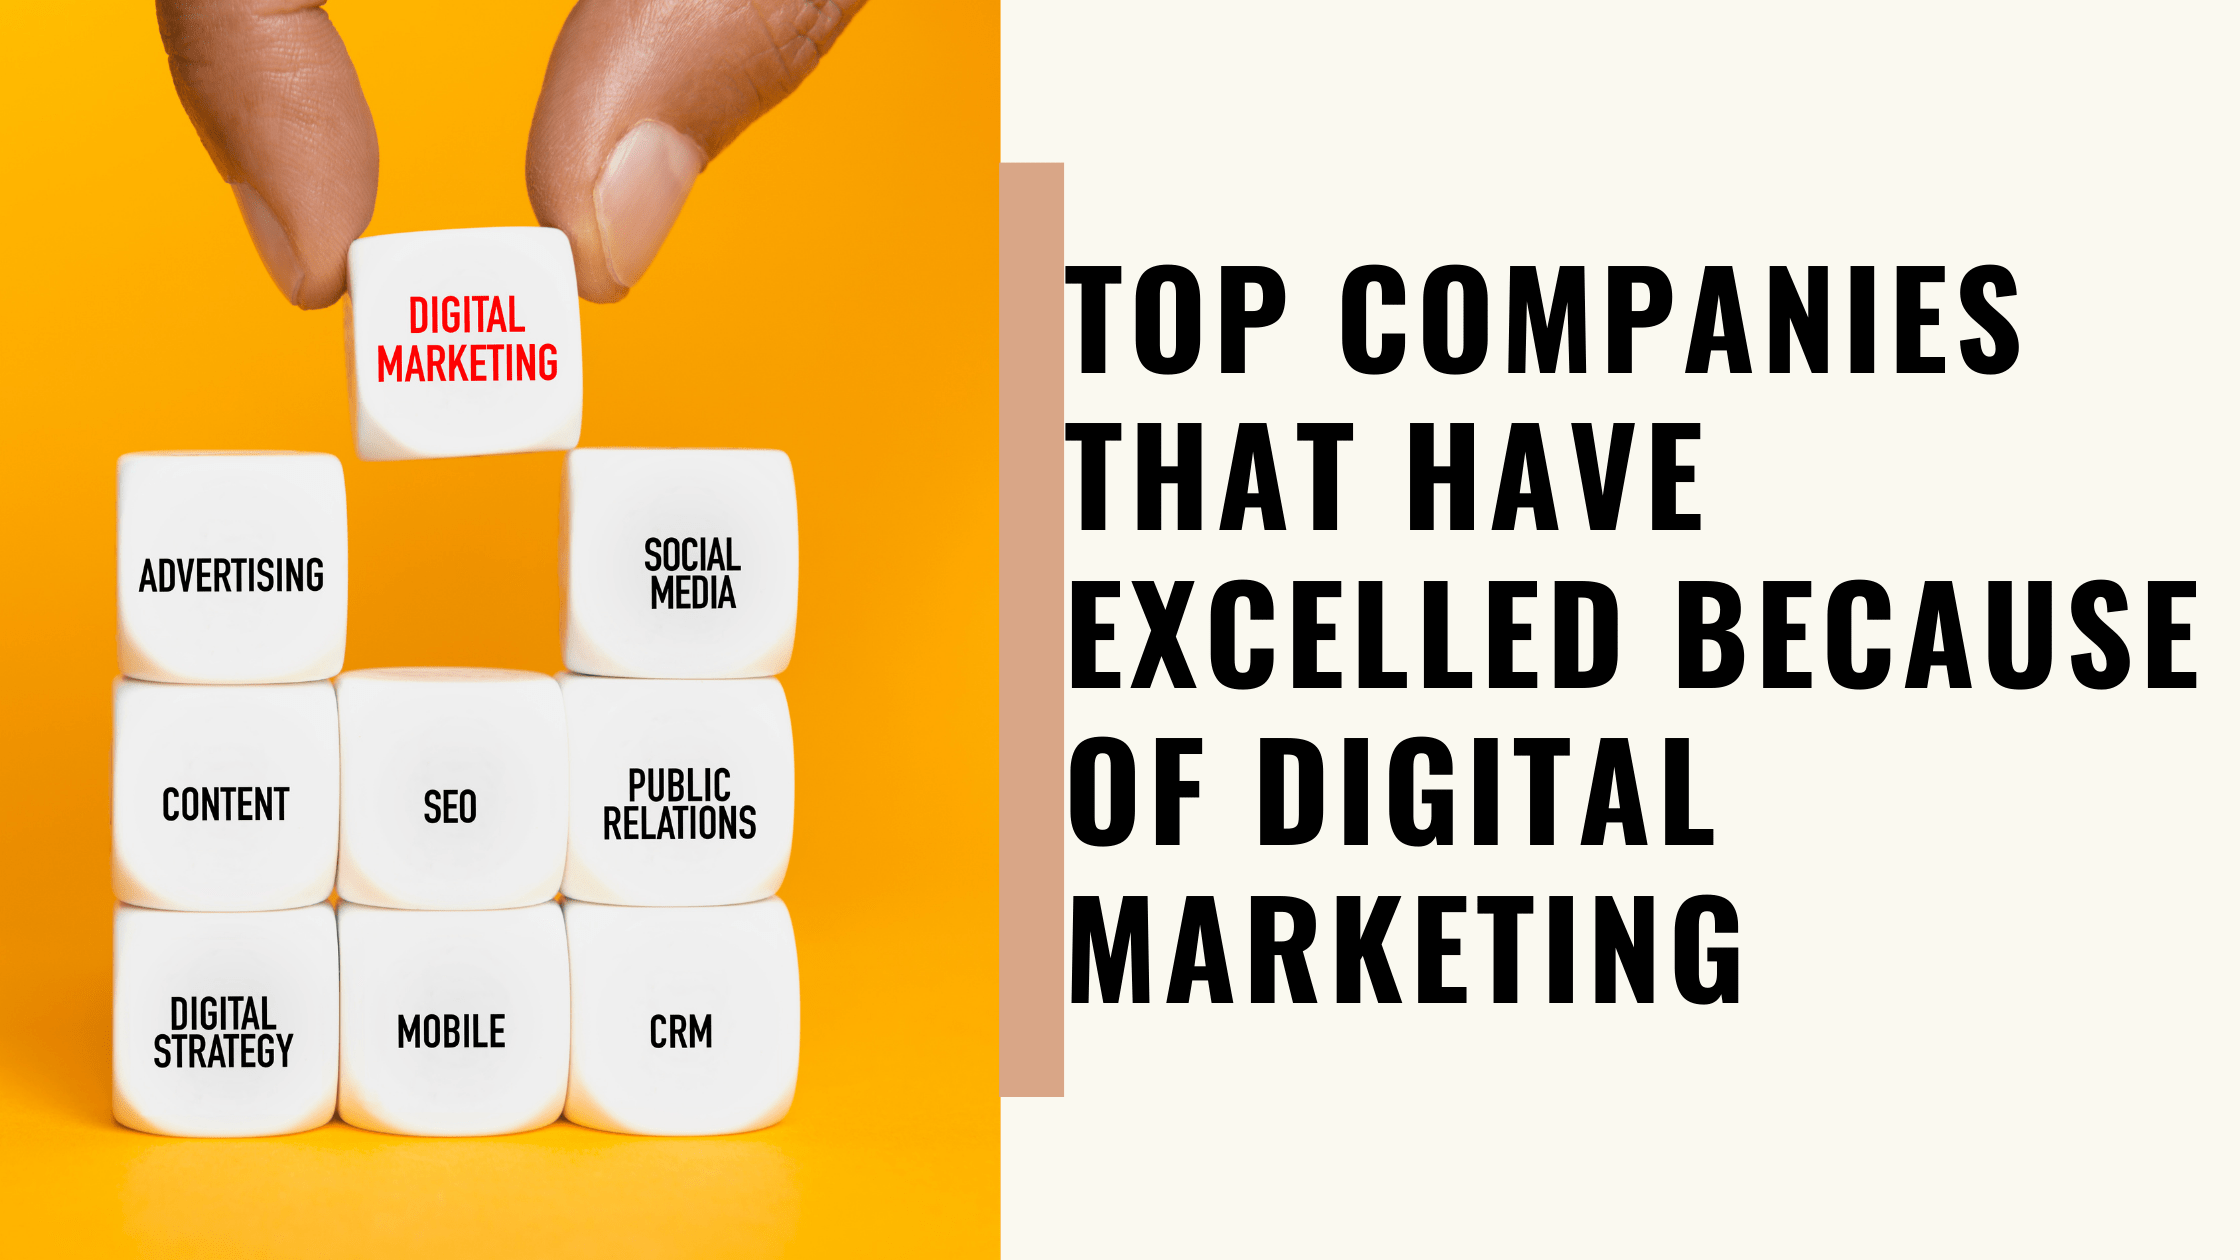 Top Companies That Have Excelled Because of Digital Marketing